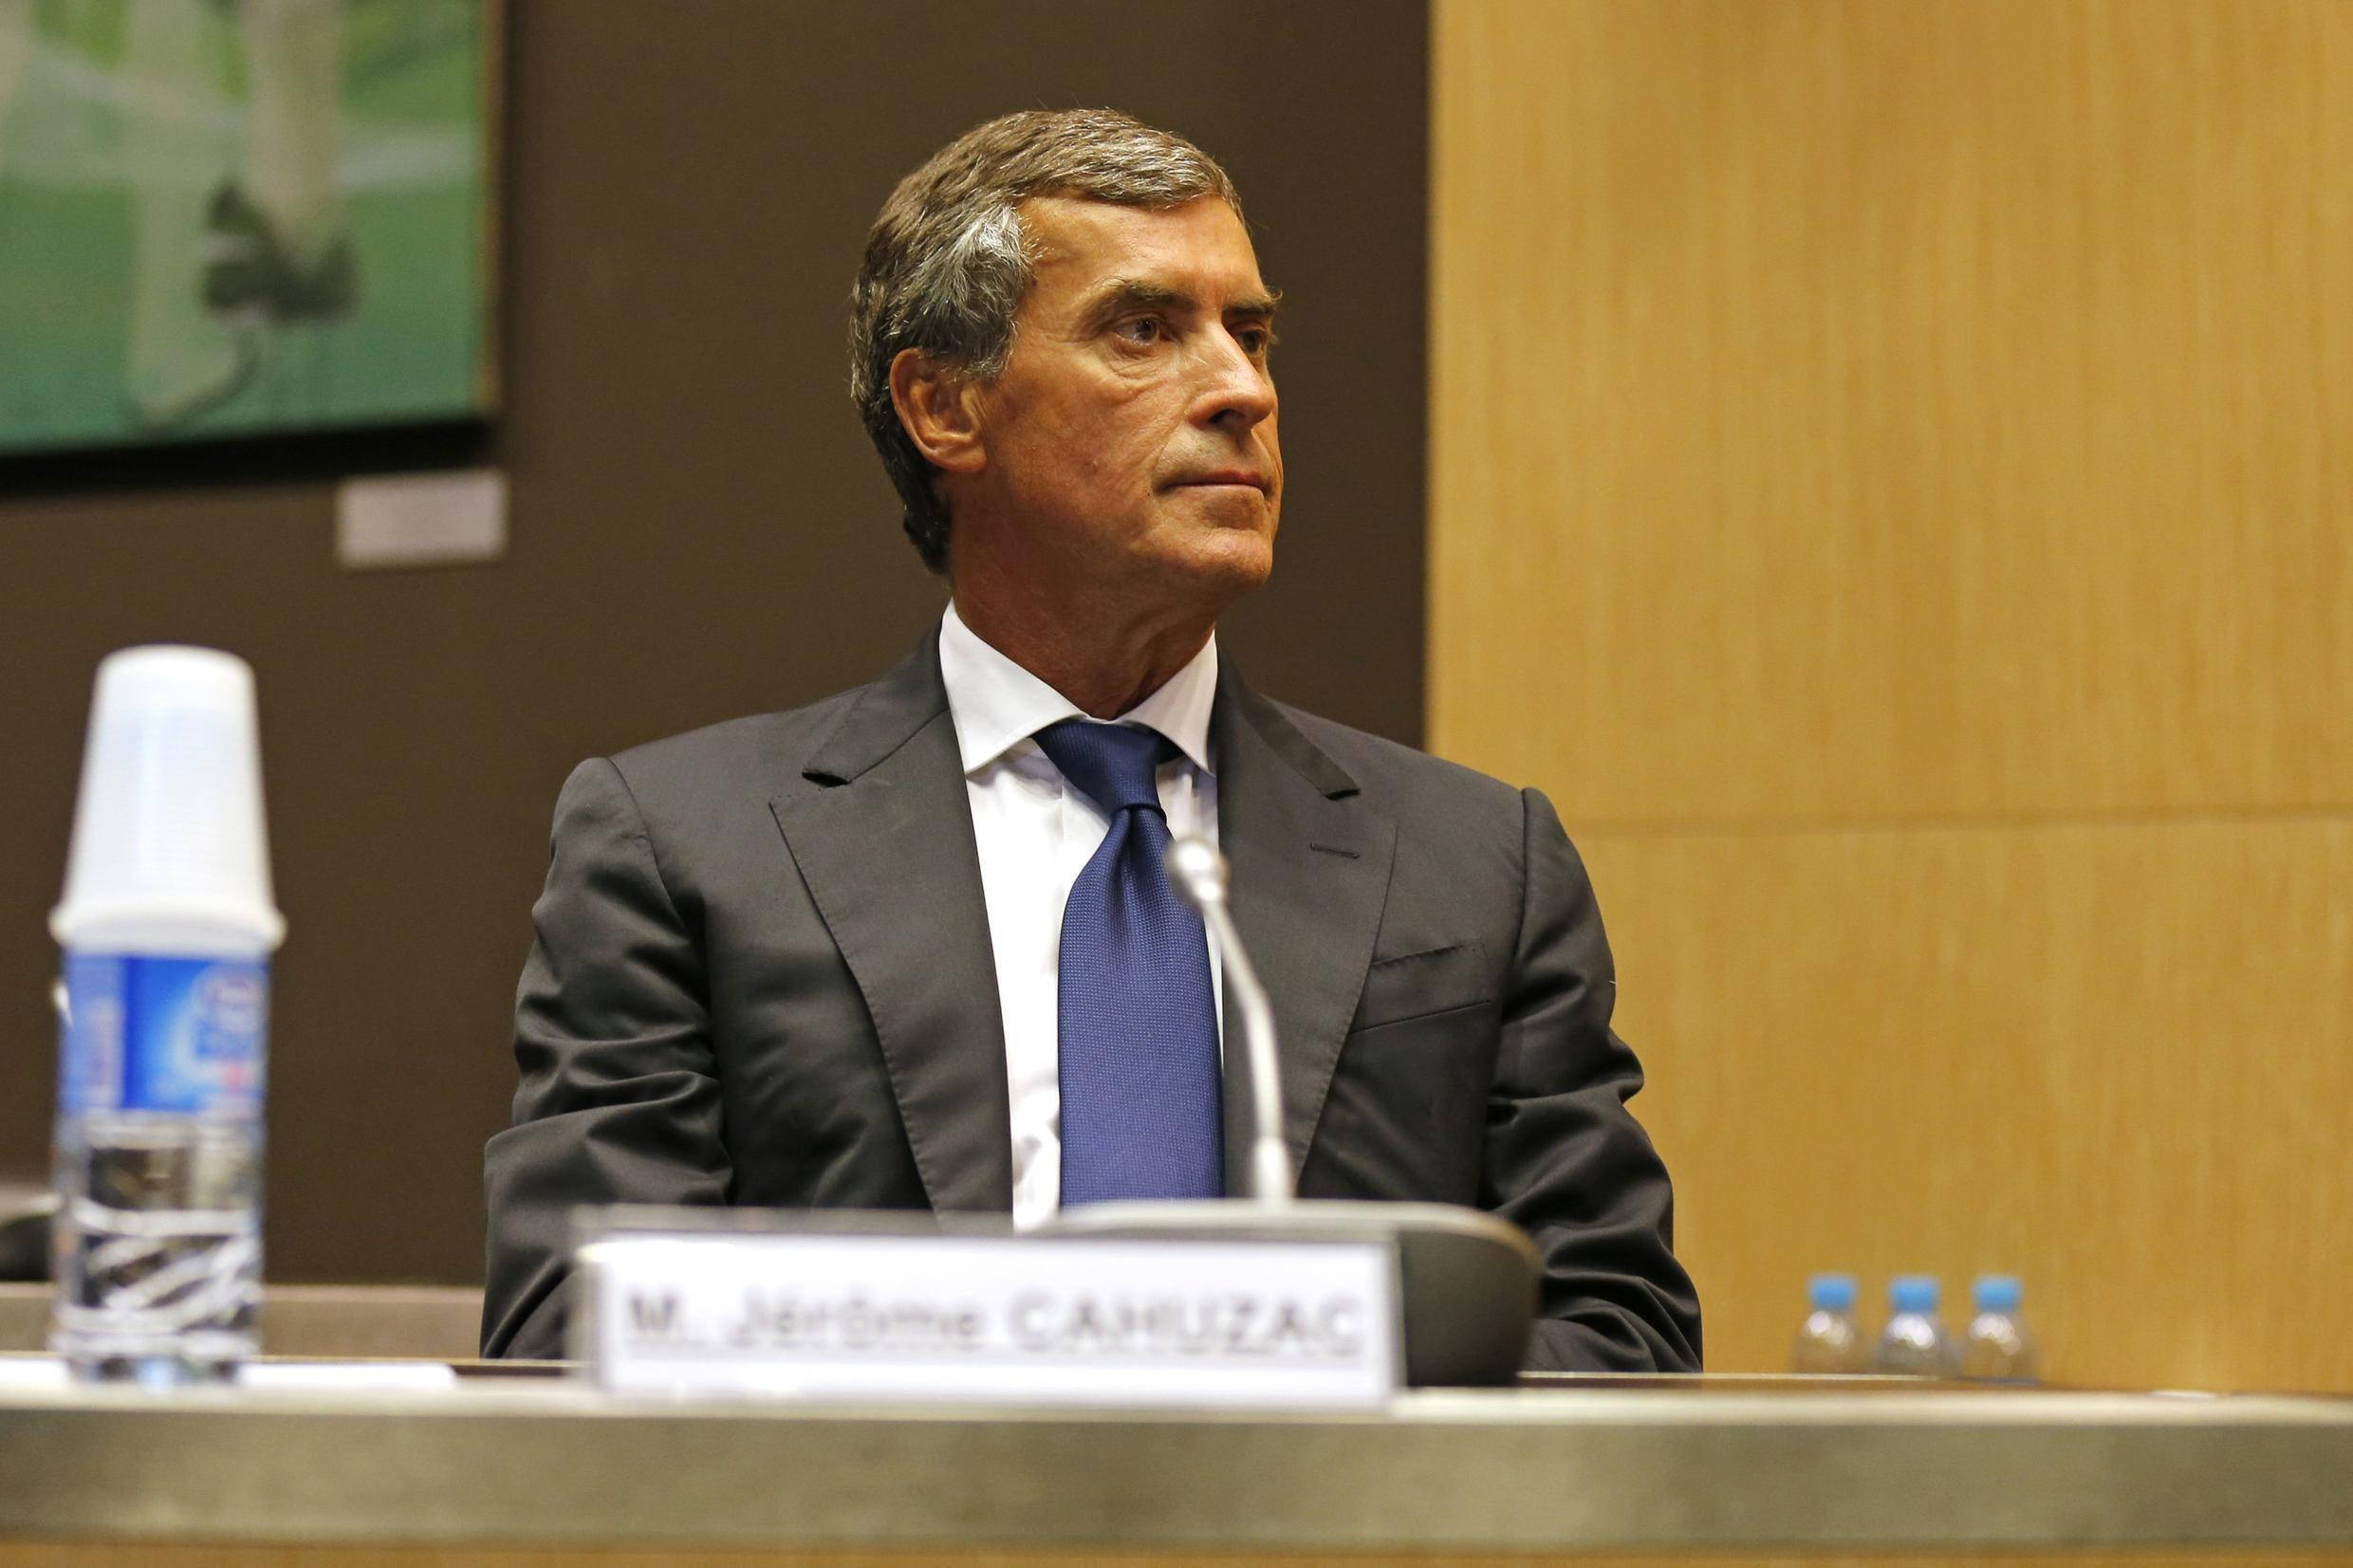 Jérôme Cahuzac waits for the start of a hearing at the National Assembly in Paris, 23 July, 2013